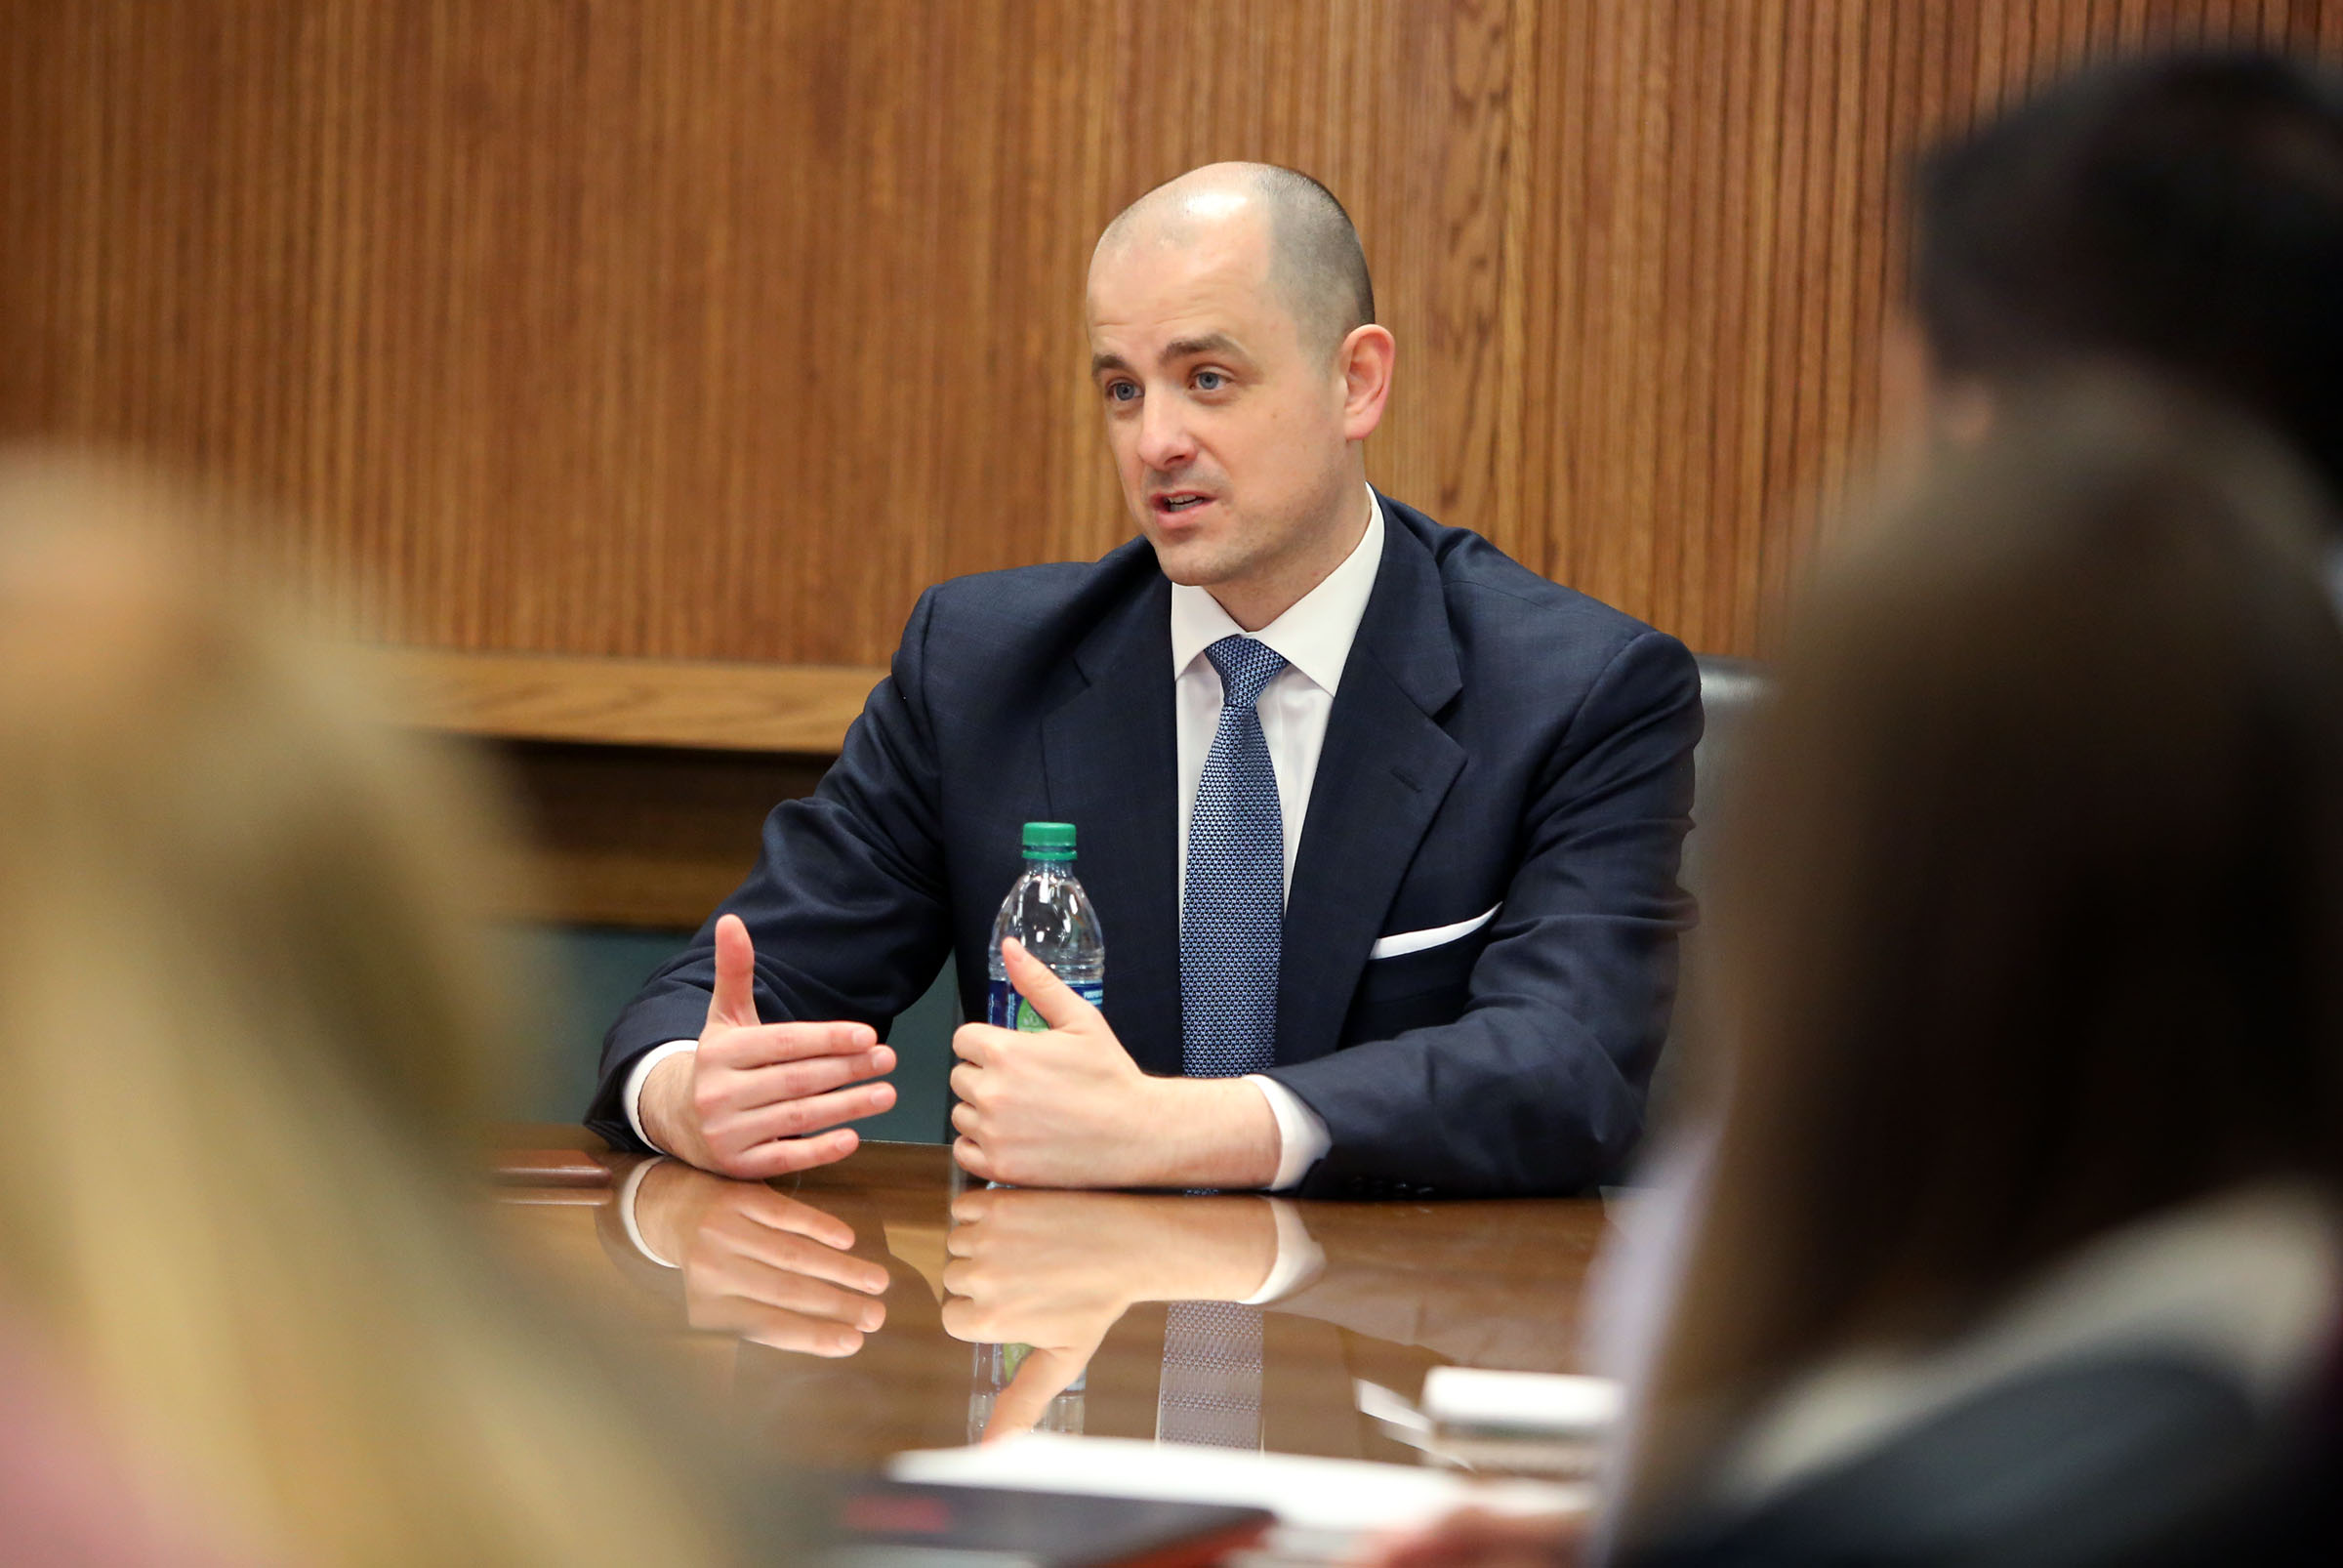 Former independent presidential candidate Evan McMullin speaks to a small group of political science students at Brigham Young University in Provo in 2017.  McMullin endorsed Utah Democratic Rep. Ben McAdams' reelection Monday and criticized his GOP opponent in the 4th Congressional District race.